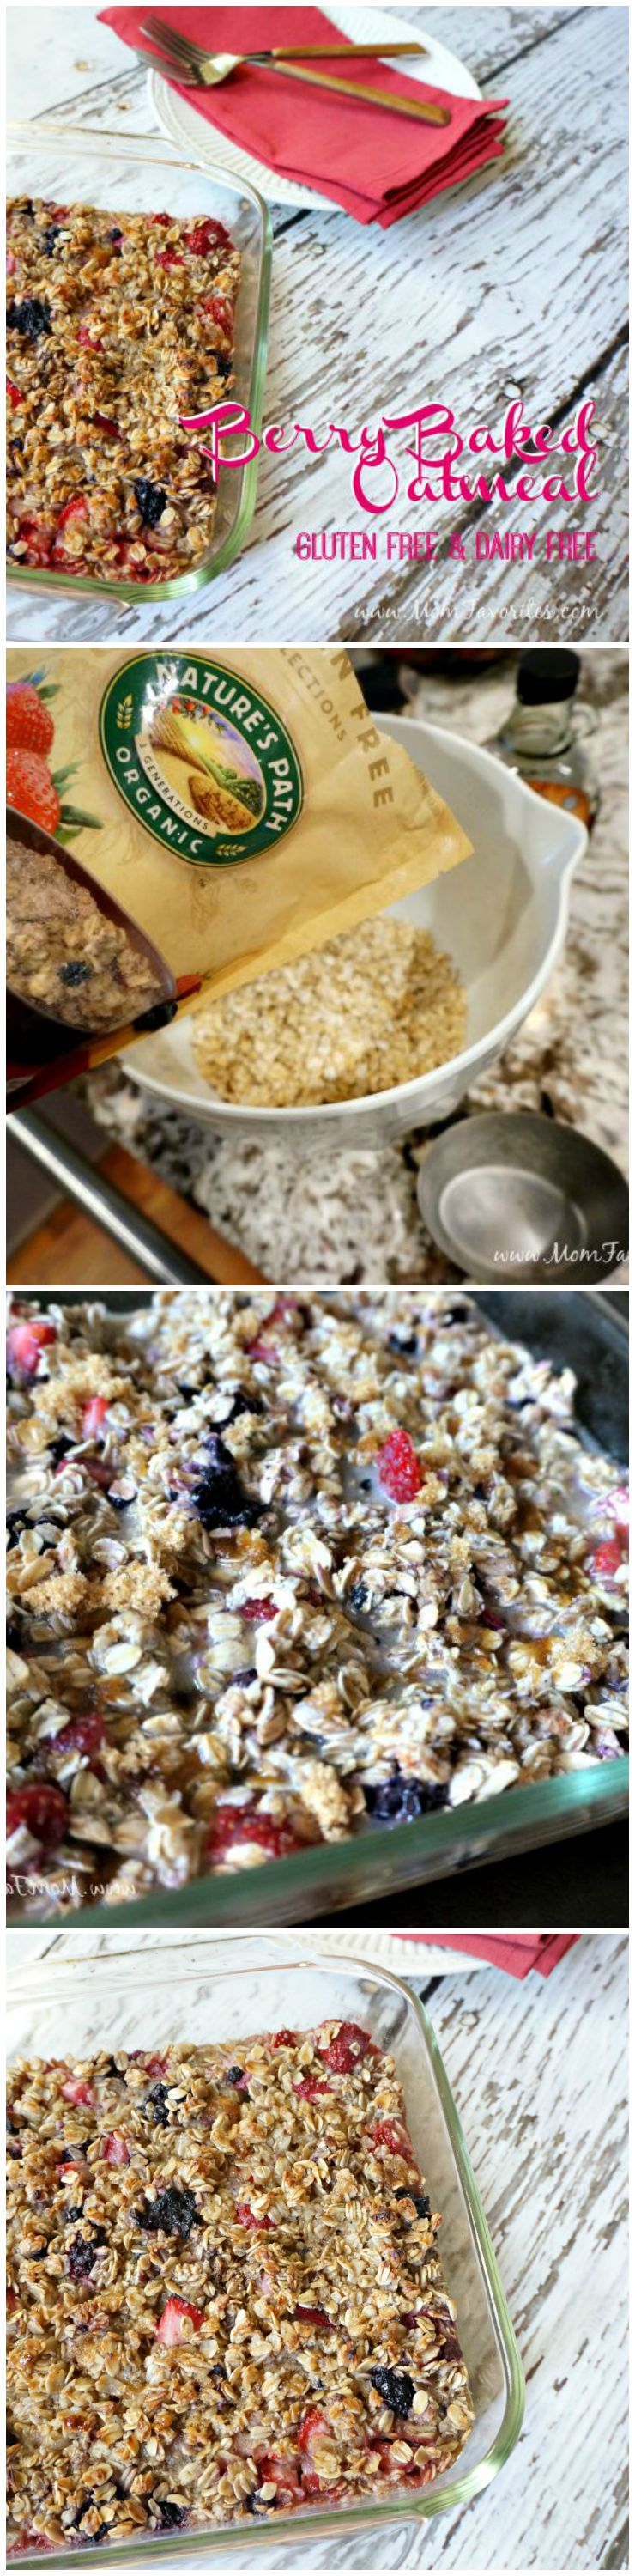 Gluten Free and Dairy Free meets delicious in this make-ahead Berry Baked Oatmeal recipe.  It's the perfect breakfast recipe for any diet!